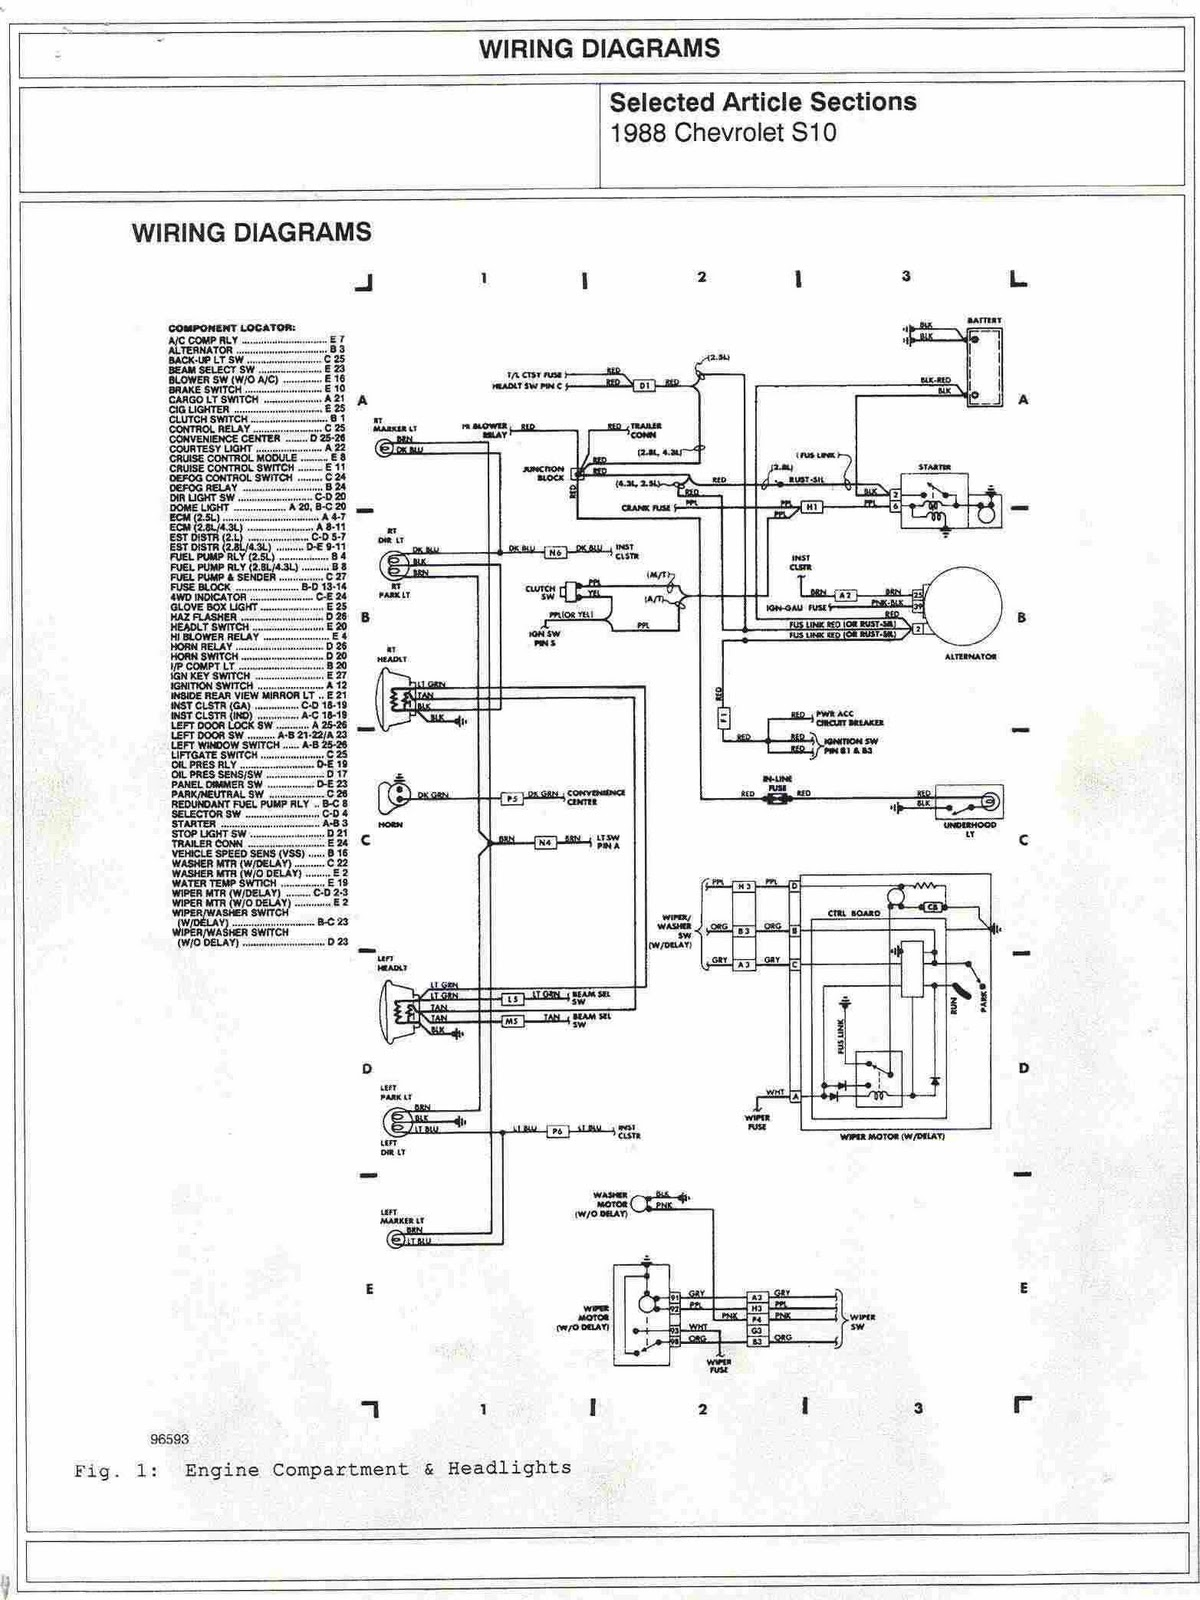 Honda Headlight Dimmer Wiring Harness | Wiring Diagram on cx500 turn signals, 2012 honda cr-v wire diagram, cx500 speedometer, cx500 headlight, cx500 engine,